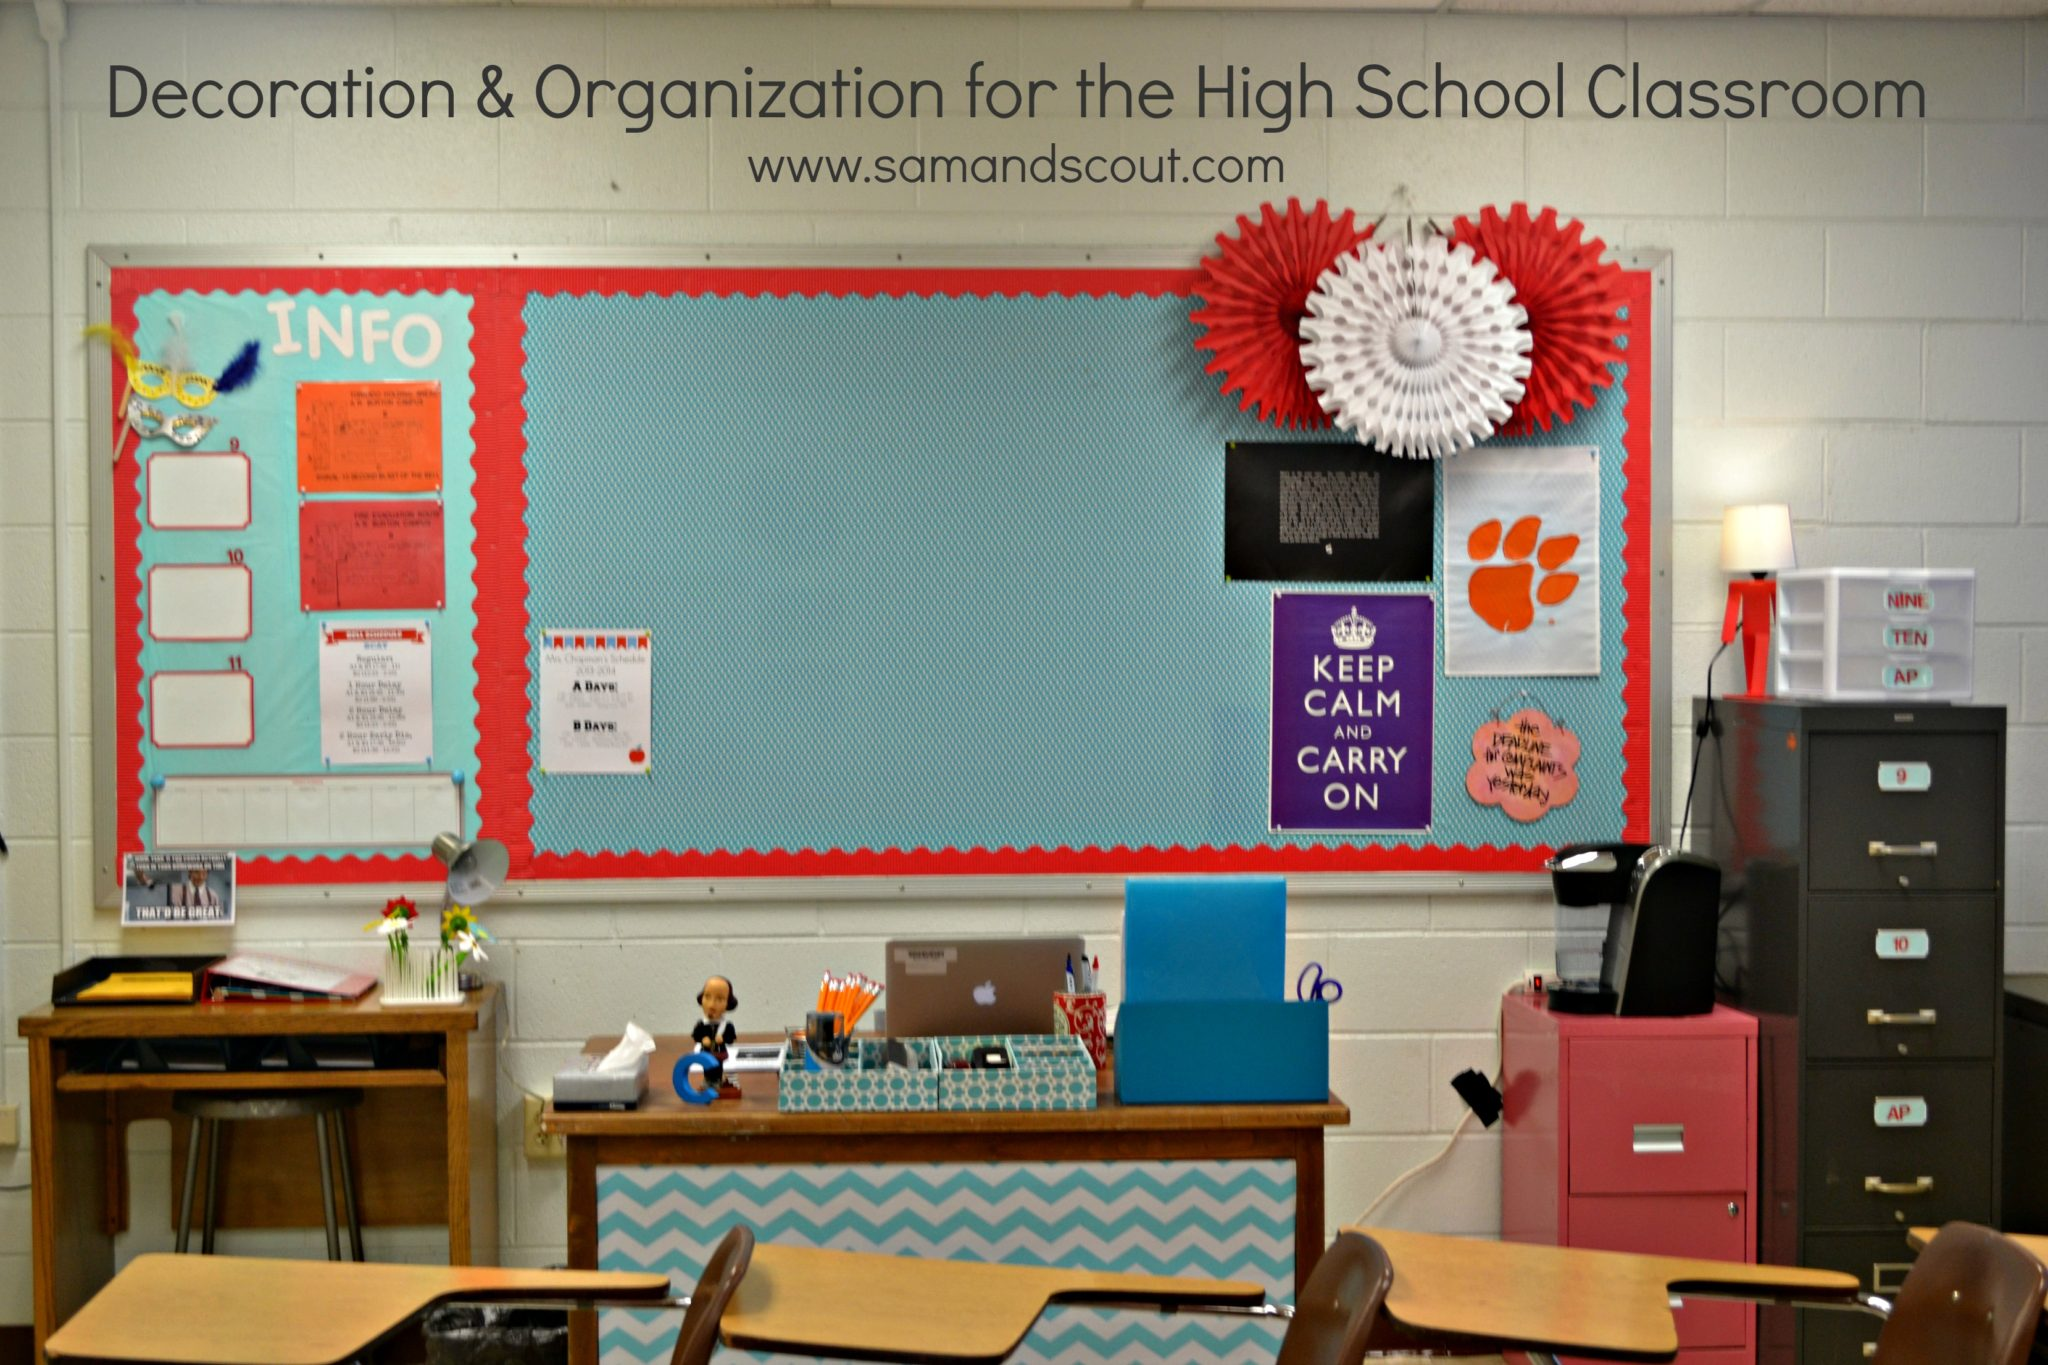 Classroom Decorating Ideas High School English ~ Decoration organization for the high school classroom